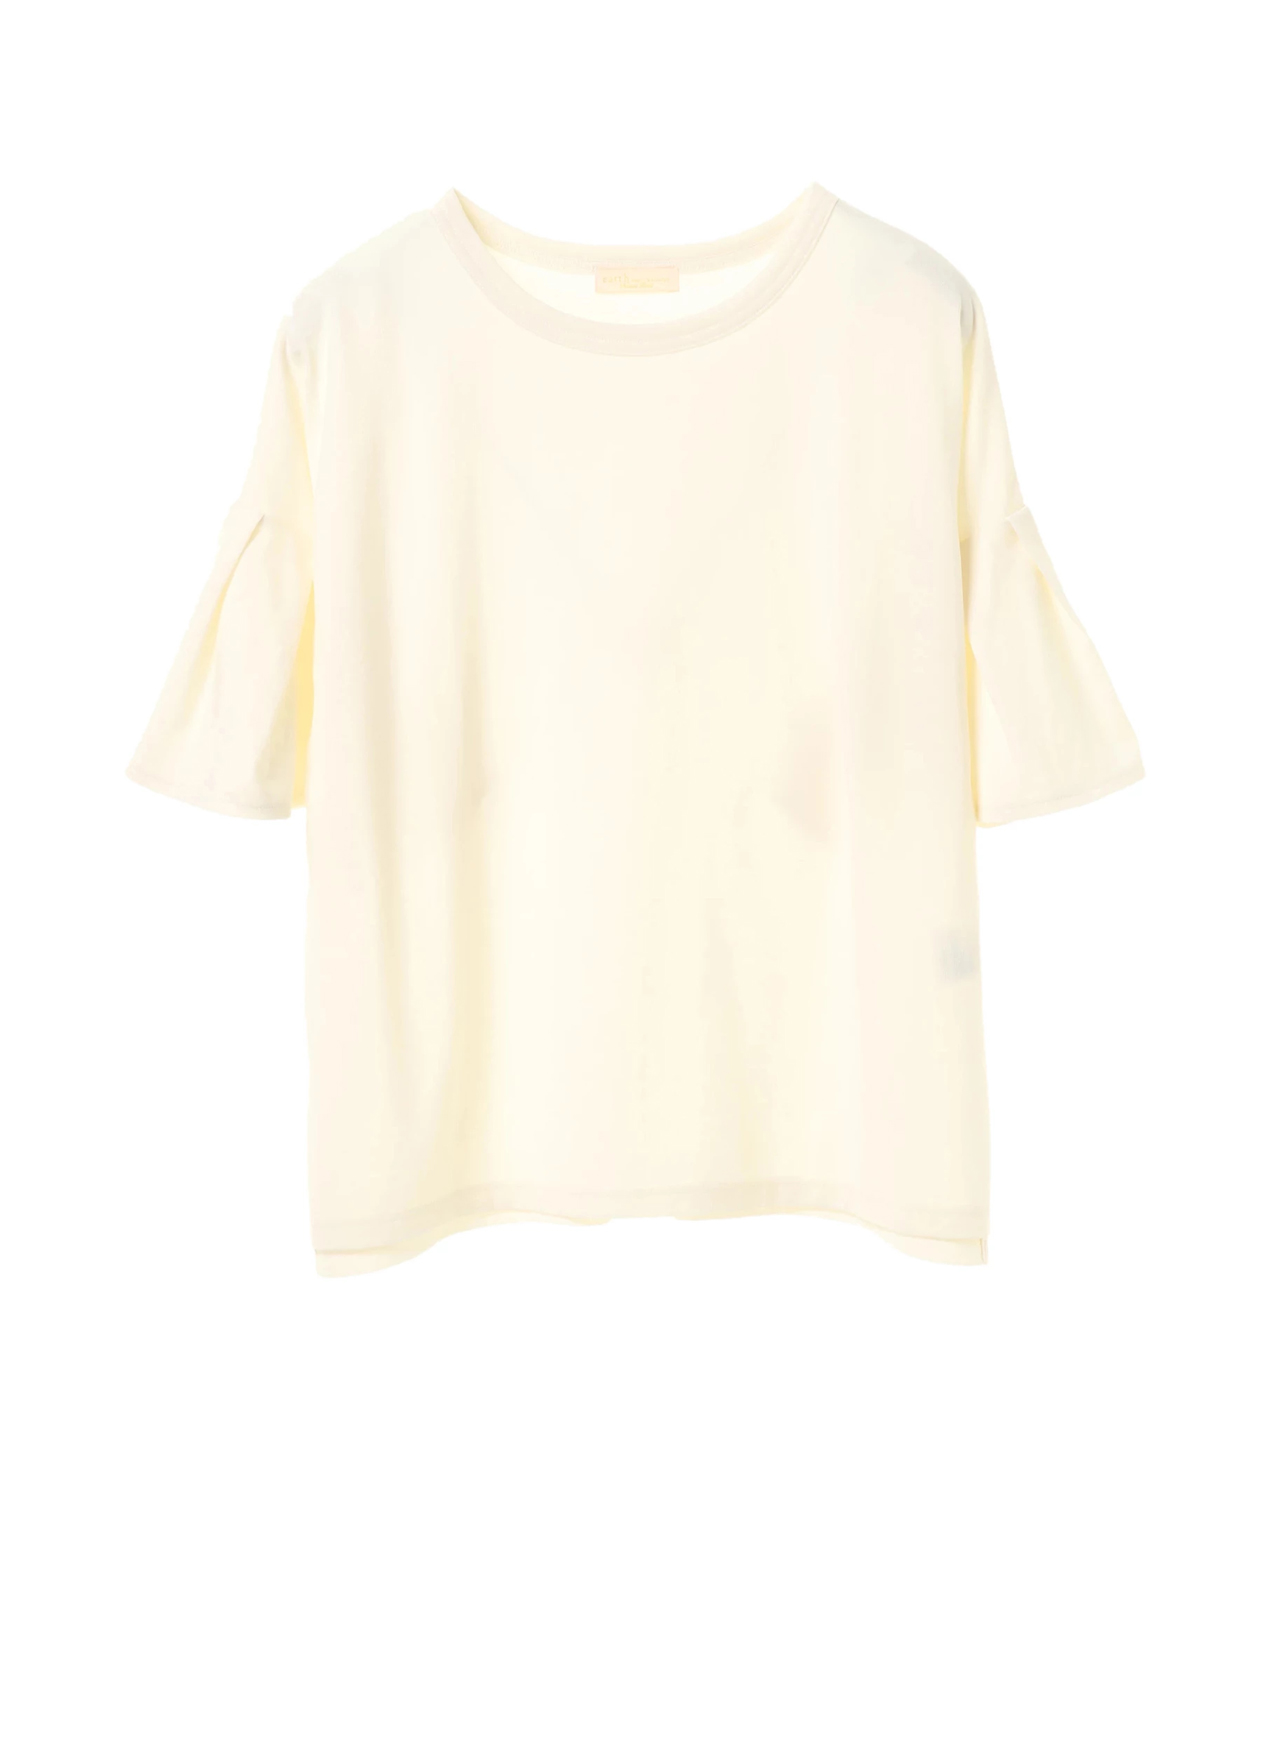 Earth, Music & Ecology Shino Top - Ivory